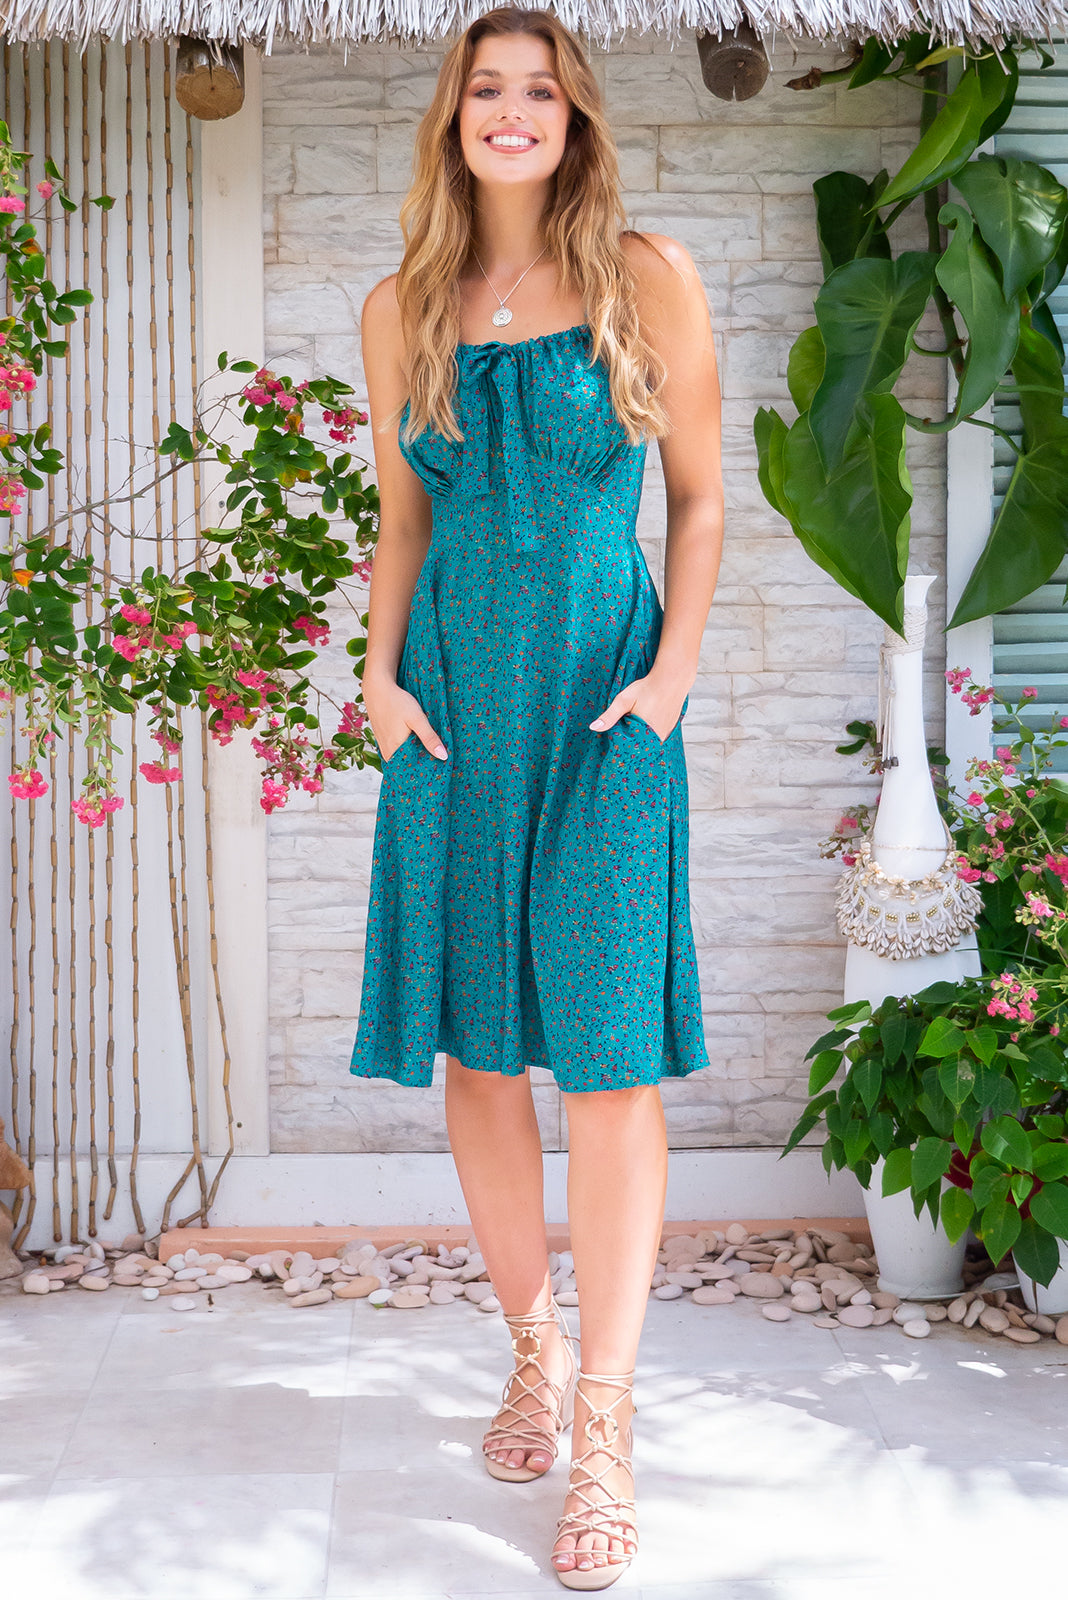 Jay Bay Jade Isle Mini Dress strappy deep green toned summer frock with adjustable neckline and side pockets, made from 100% viscose.